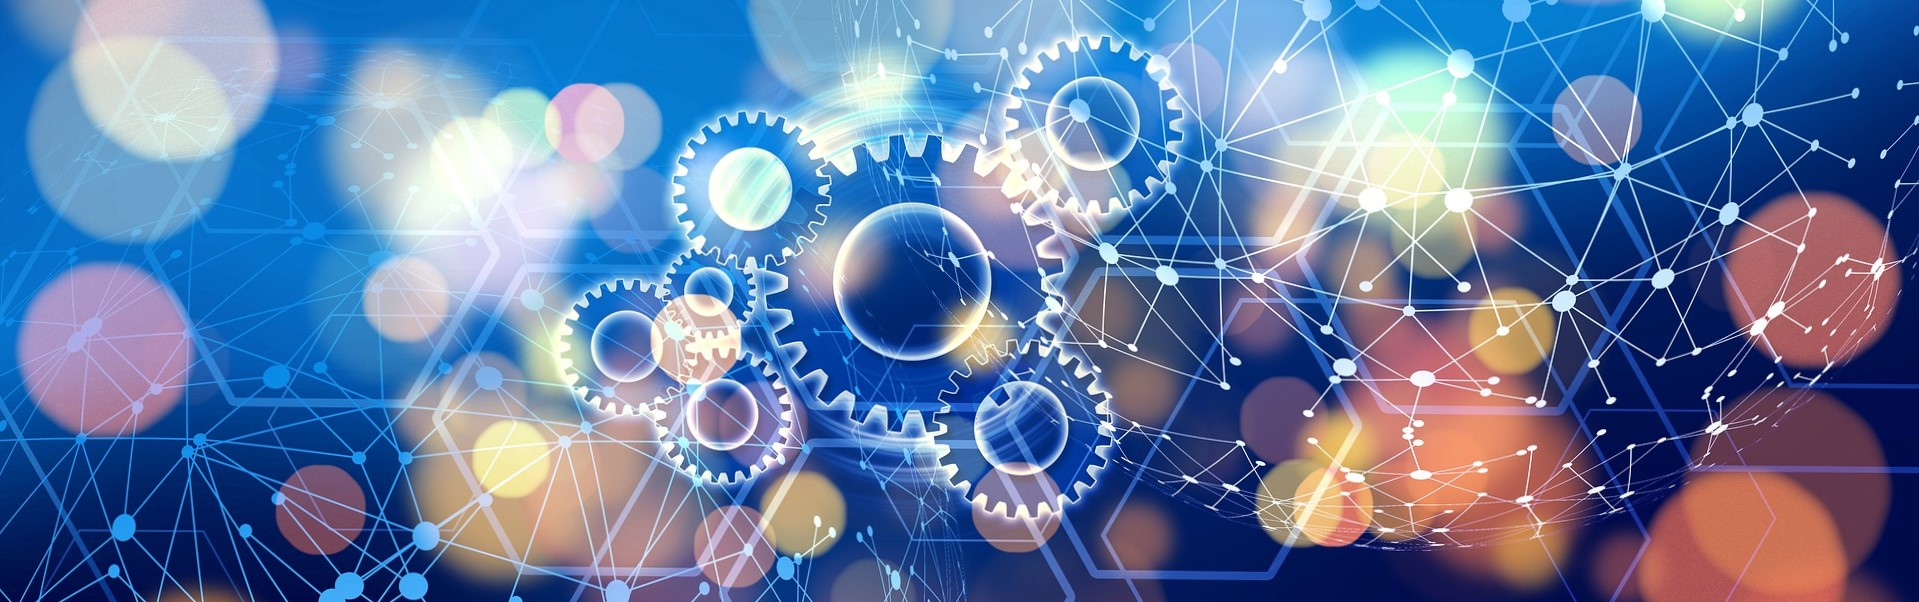 A picture of gears and networks, representing Analytics and Automation